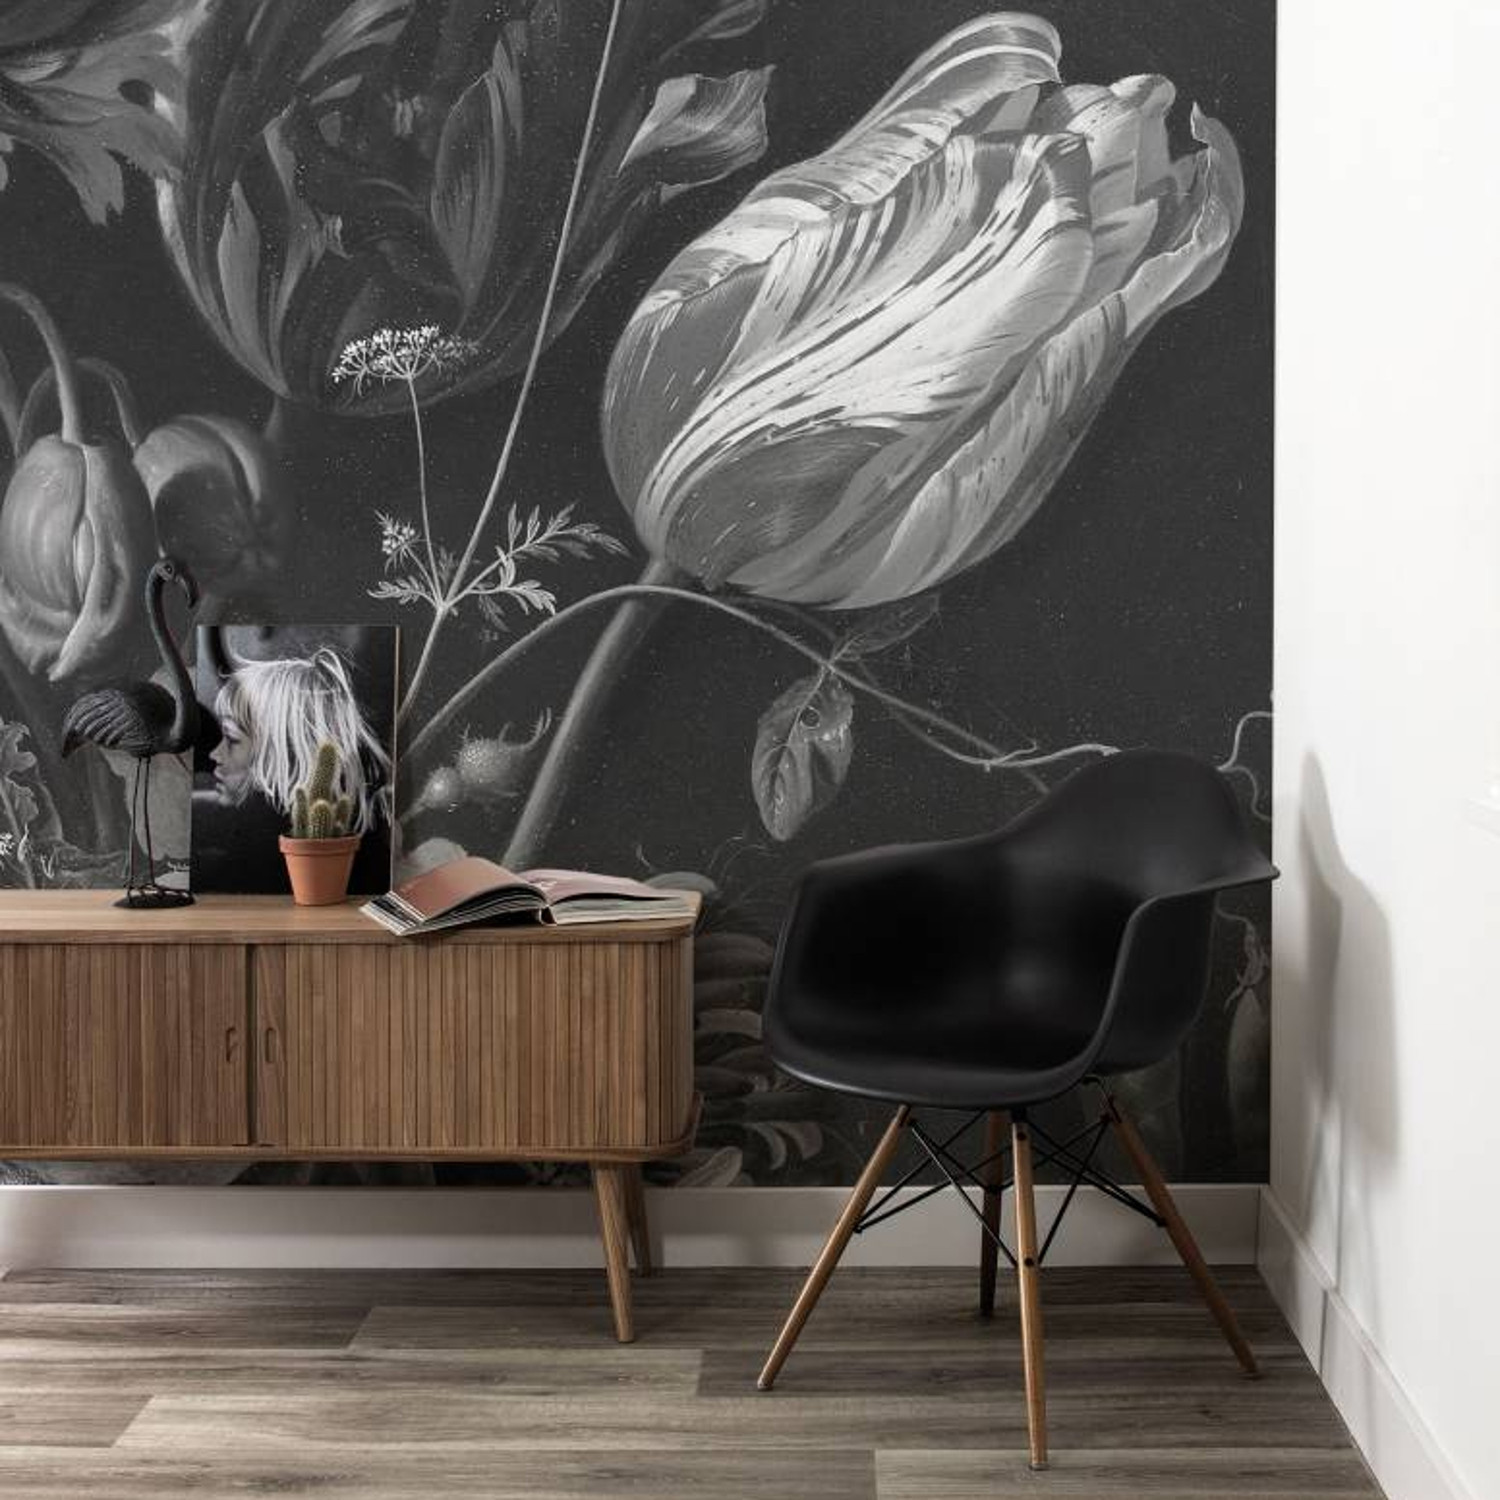 Kek Amsterdam Behang Golden Age Flowers 389.6x280cm-8719743885929-34